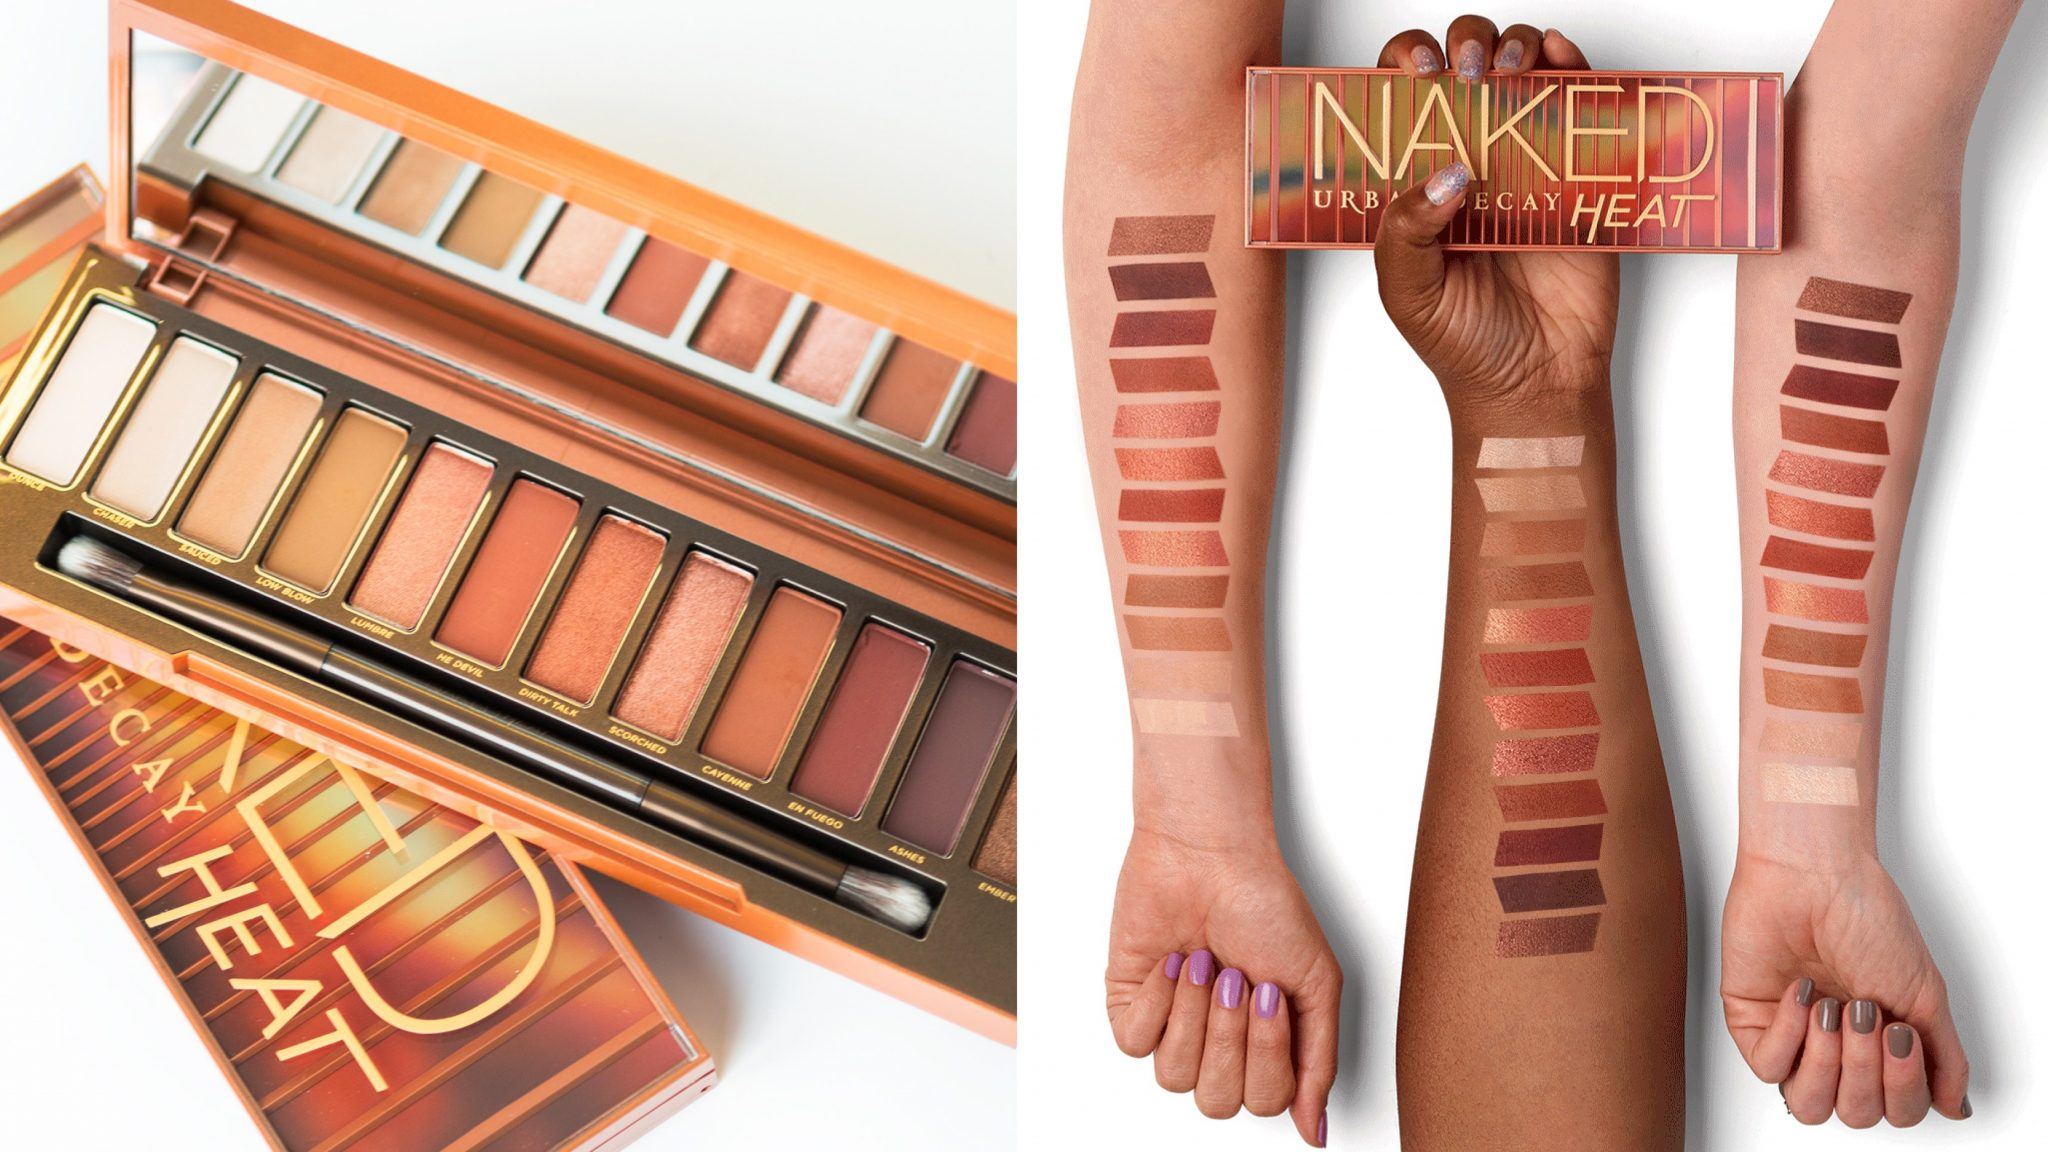 Urban Decay Naked Heat UK